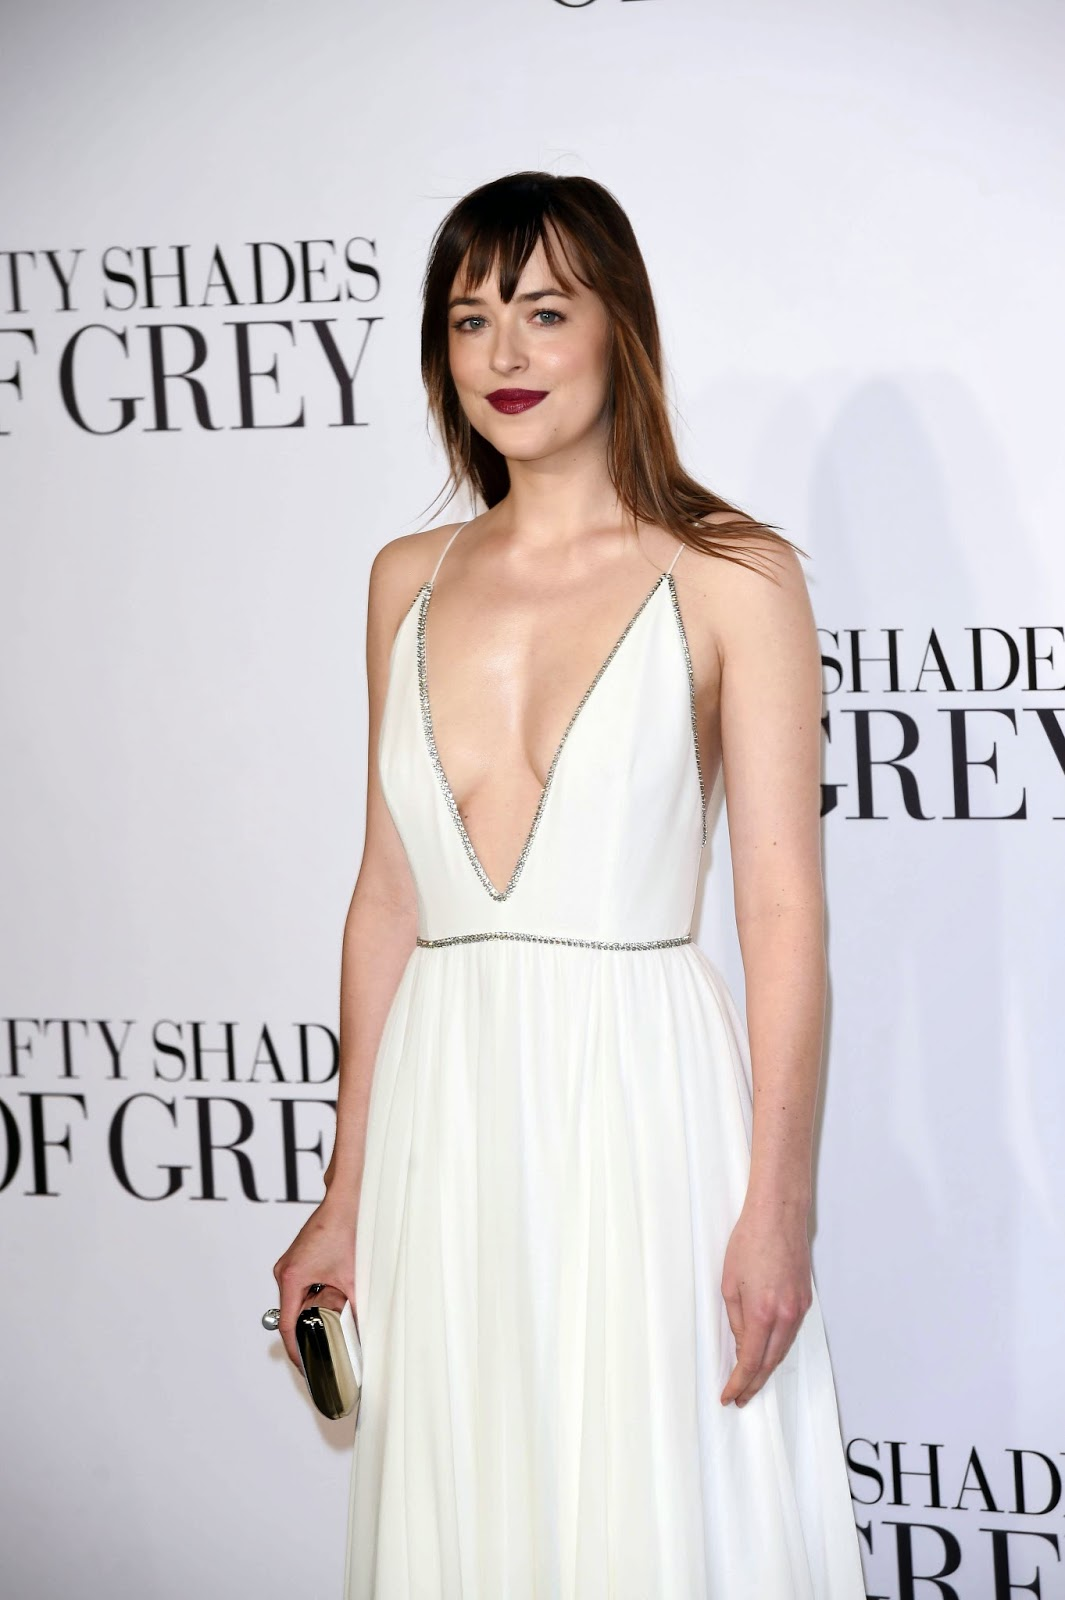 Fifty Shades Of Grey 2 Premiere